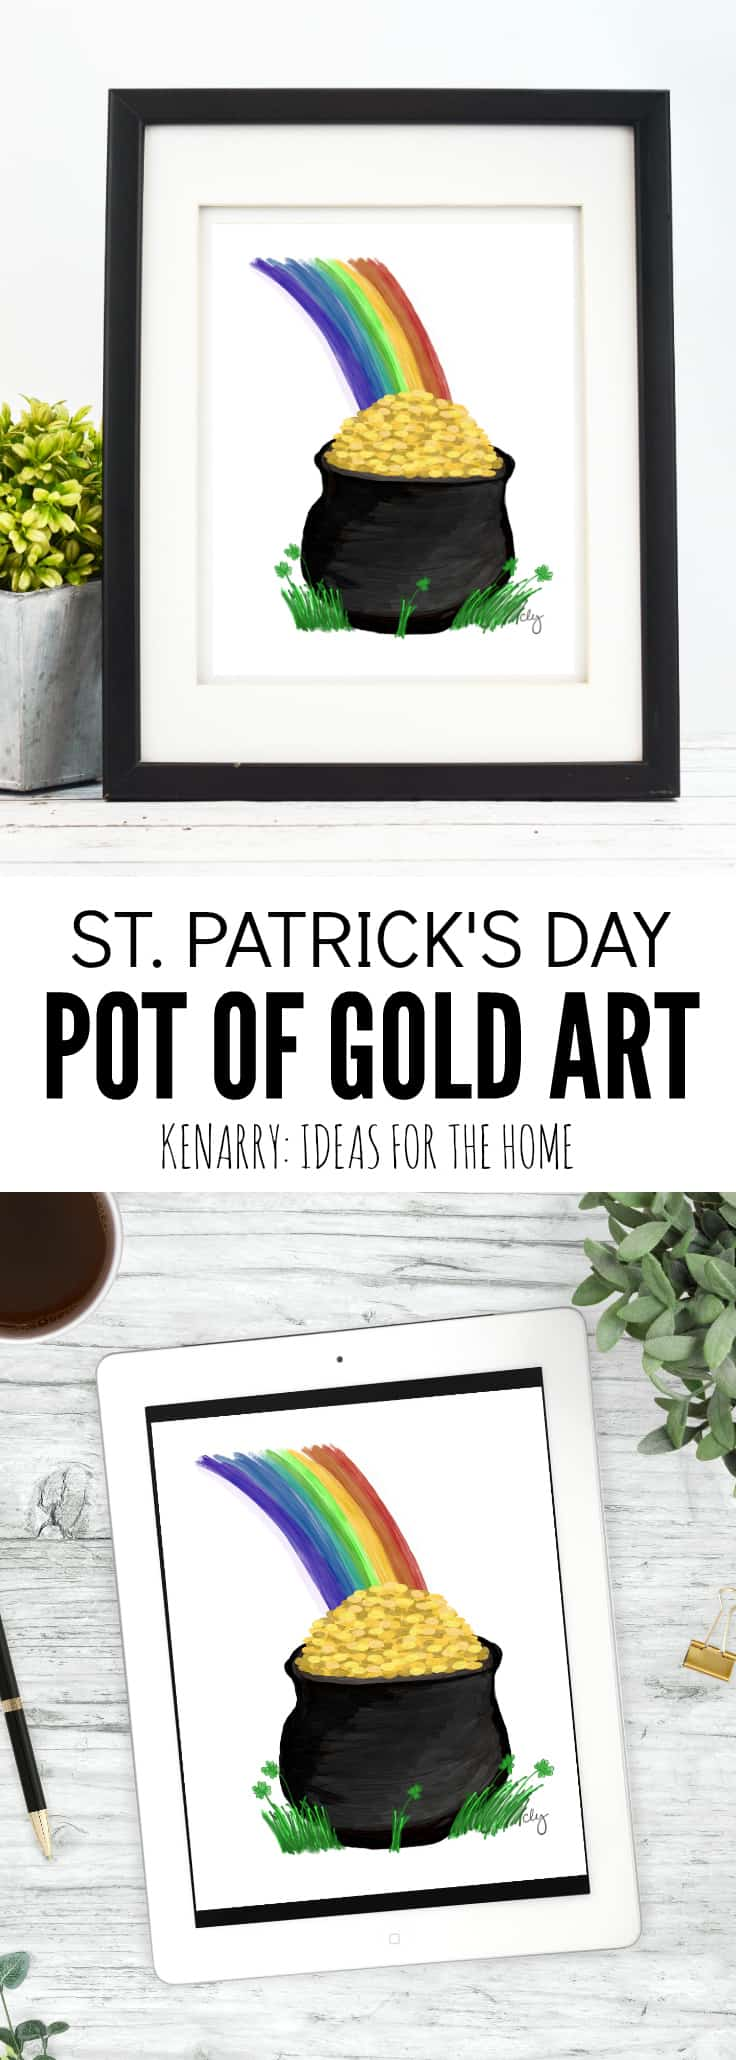 Looking for St. Patrick's Day home decor? This St. Patrick's Day Pot of Gold art is colorful and festive - plus it's budget friendly too. Buy it now as a digital printable from Kenarry: Ideas for the Home on Etsy.